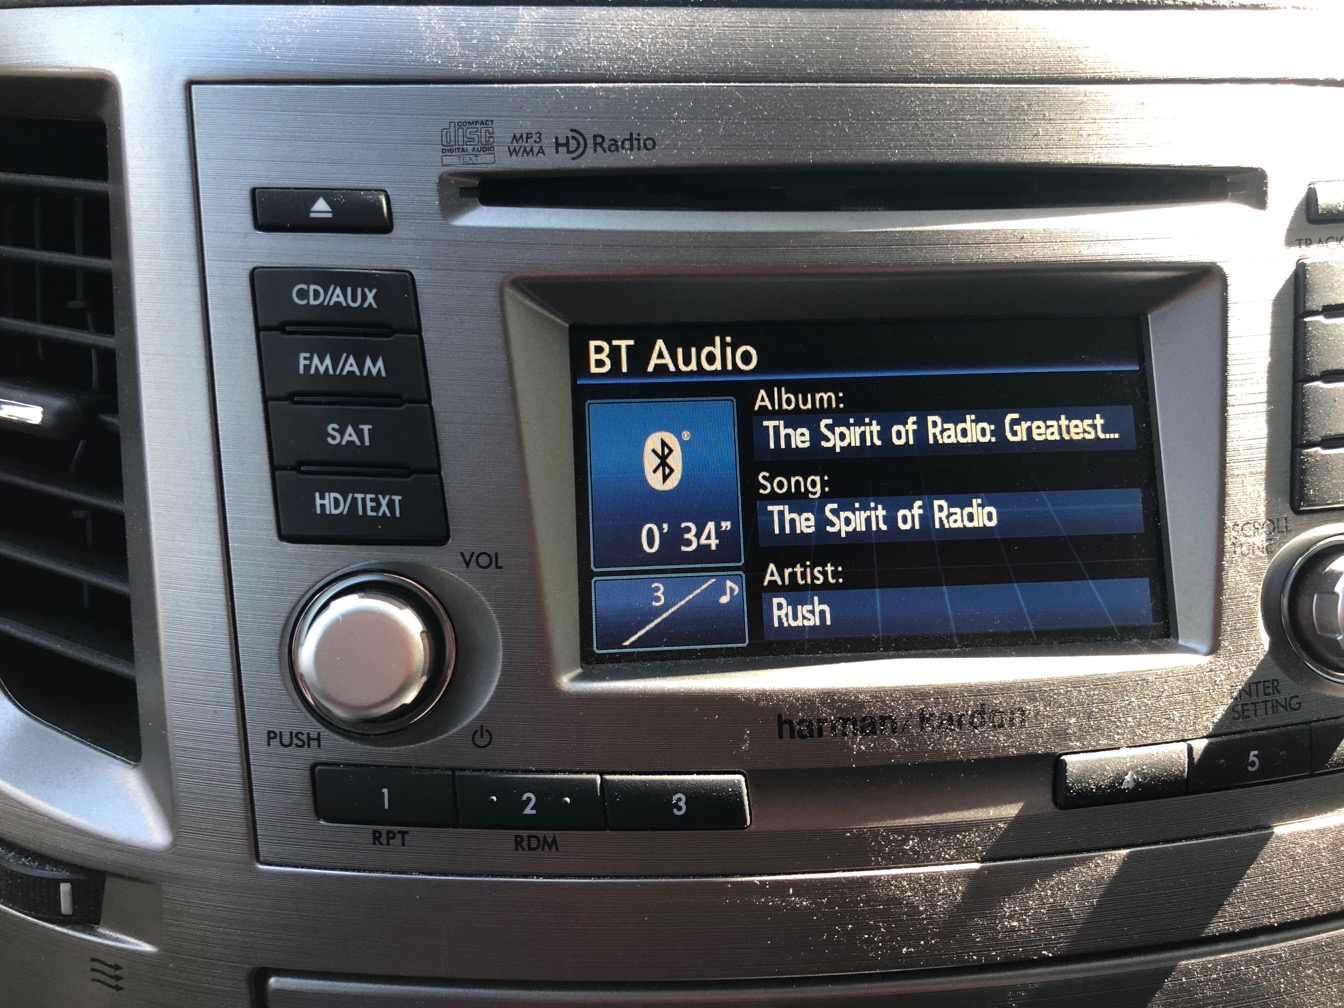 Photo of car stereo display; The Spirit of Radio by Rush is playing.